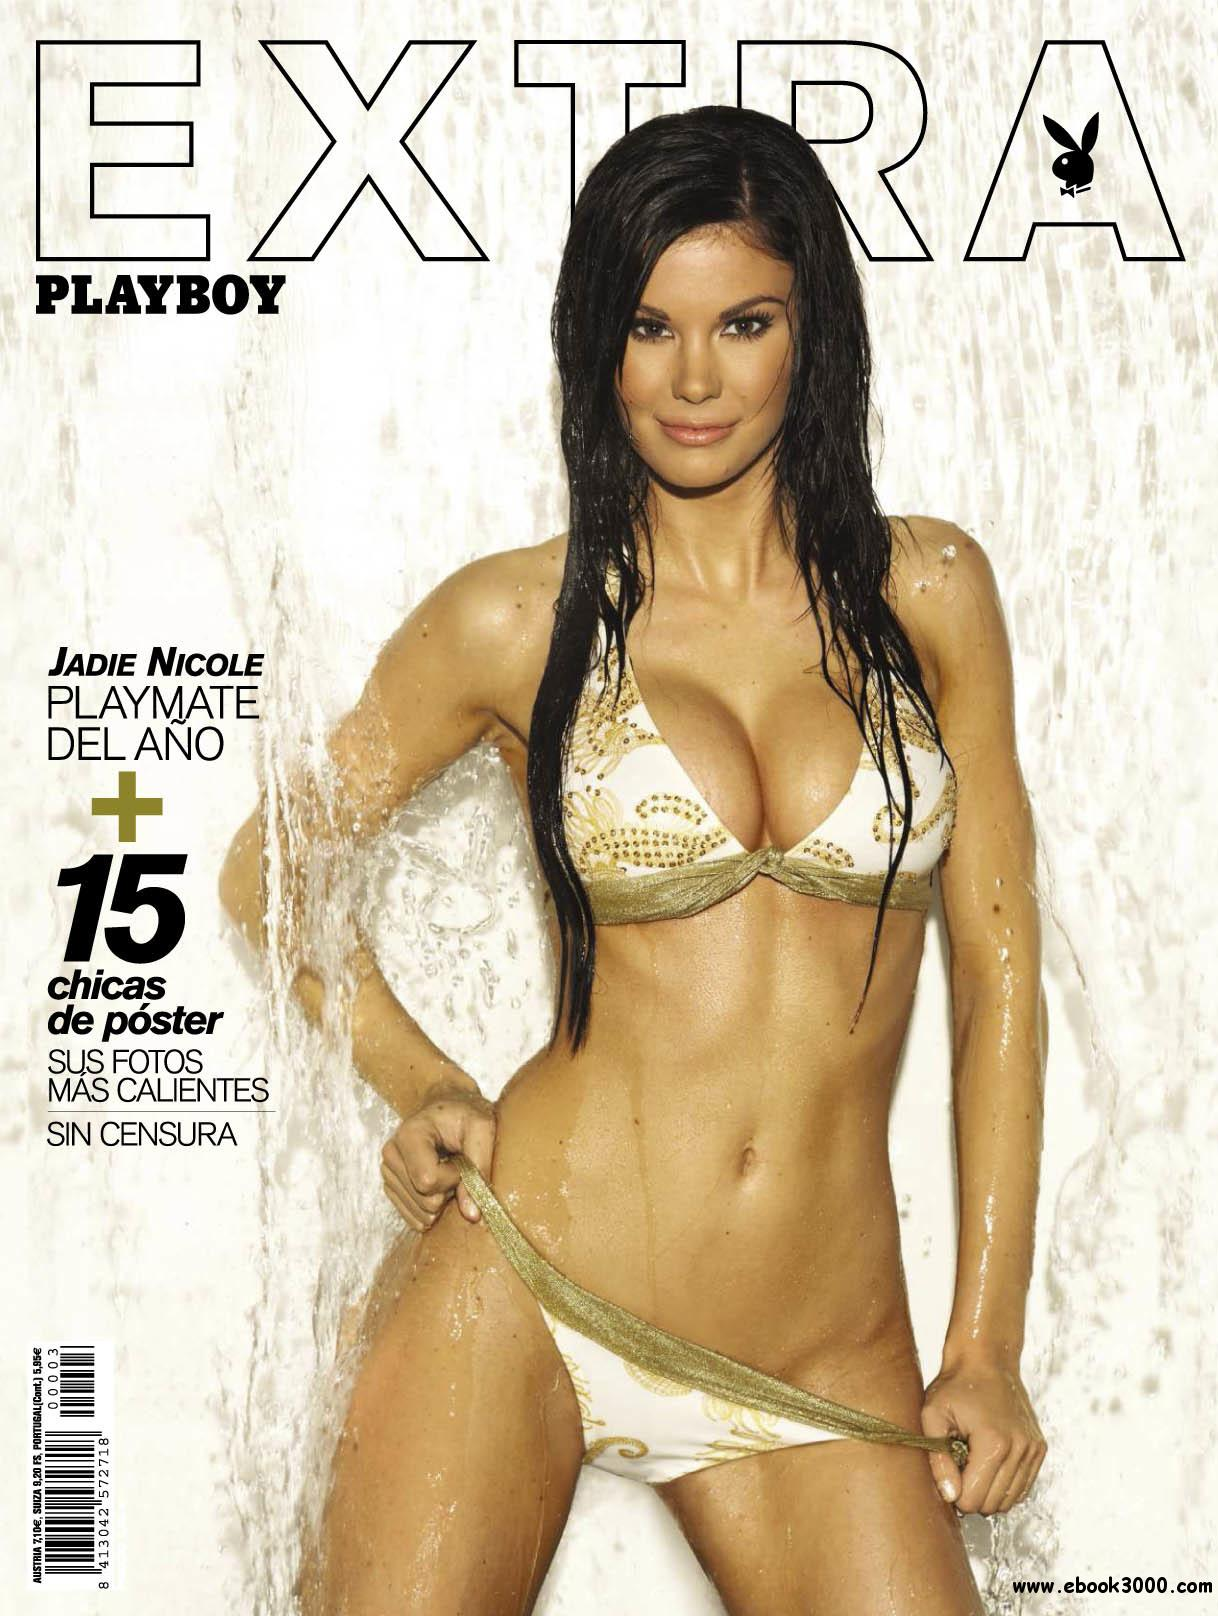 Playboy Extra Spain - October 2008 free download